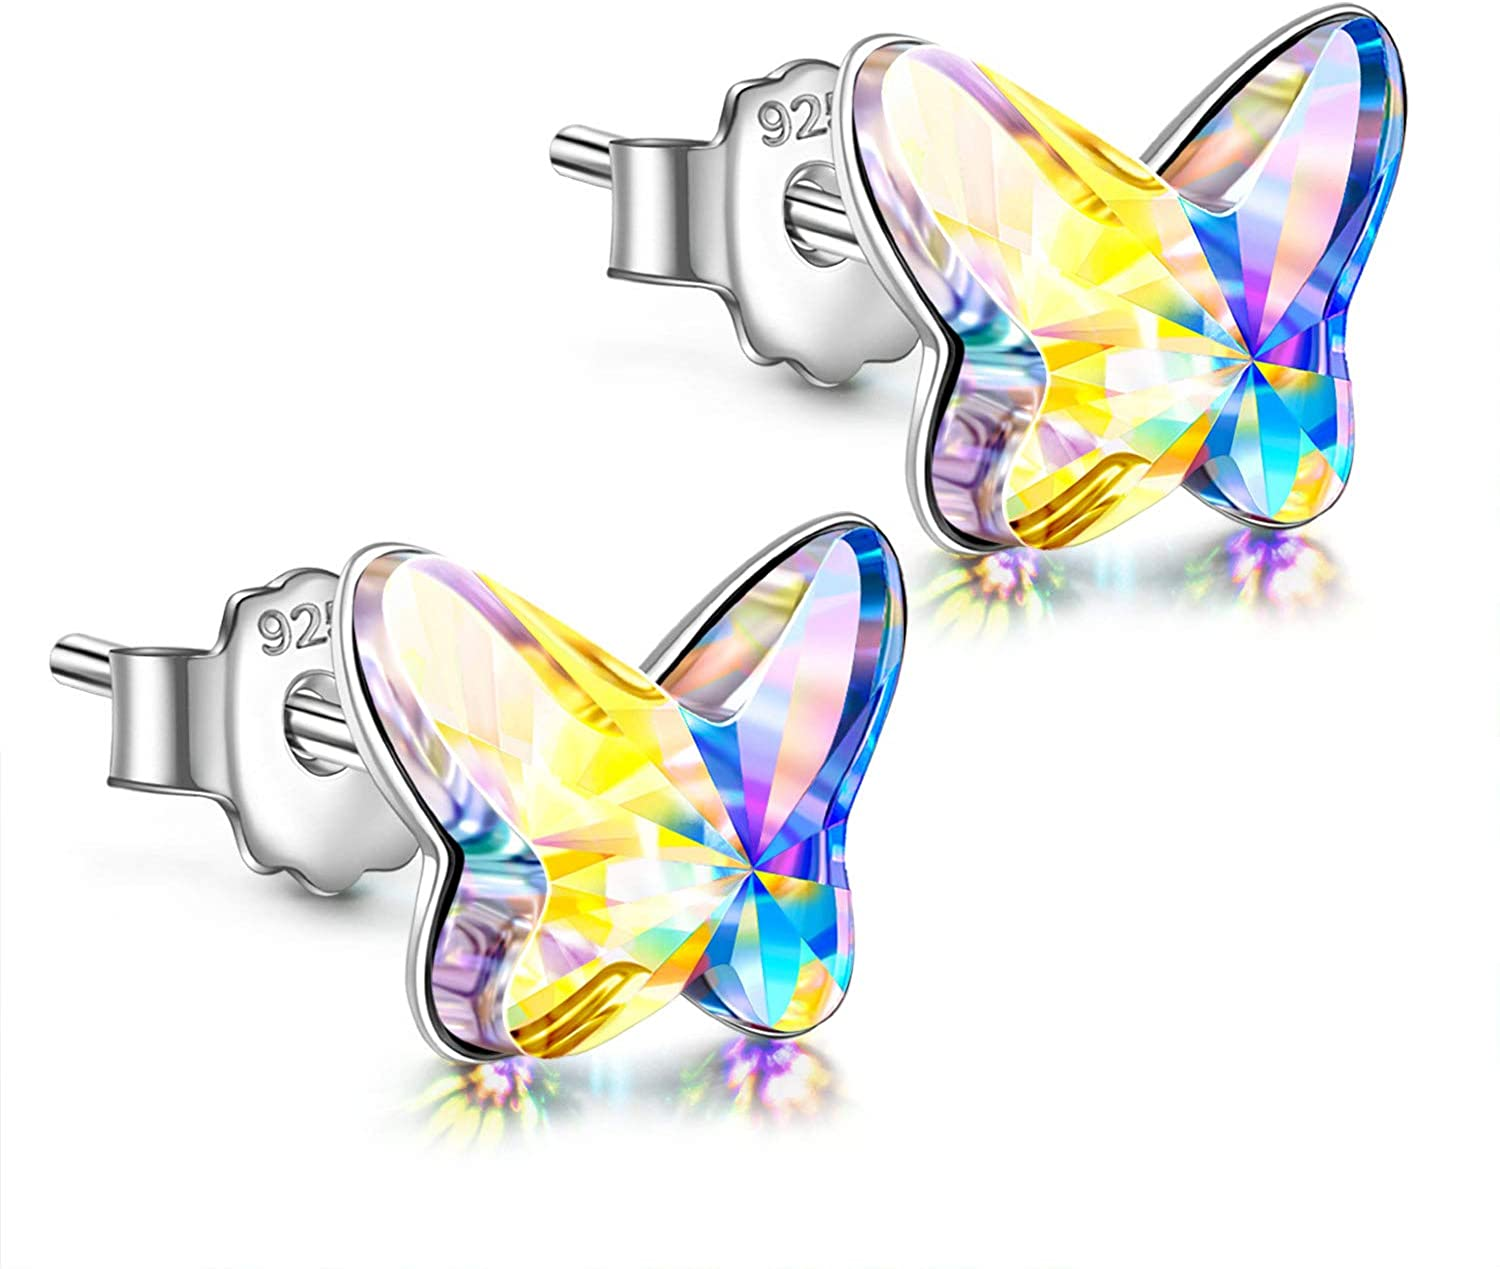 ANGEL NINA Girls Earrings, Gifts for Women 925 Sterling Silver Butterfly Stud Earrings Hypoallergenic Made with Austria Crystals Jewelry Mothers Day Birthday Gifts with Jewelry Box